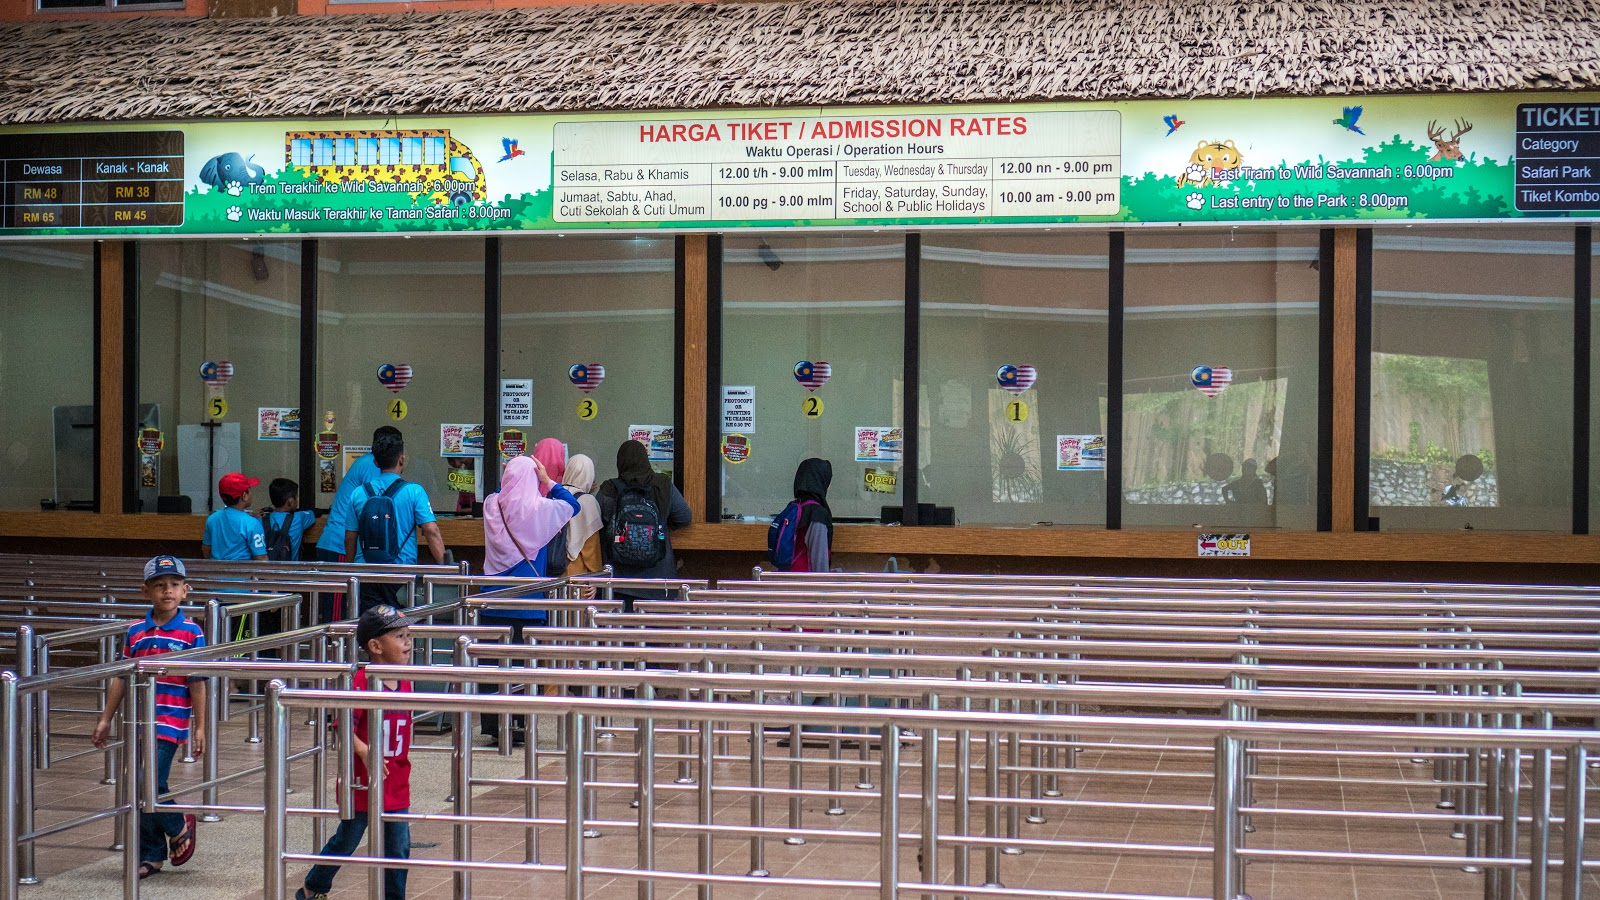 Bukit Gambang Safari Park Singapore Et Ticket Night Dewasa Their Ticketing Counters Are Located At Different Locations The Water Counter Will Be Ground Floor While